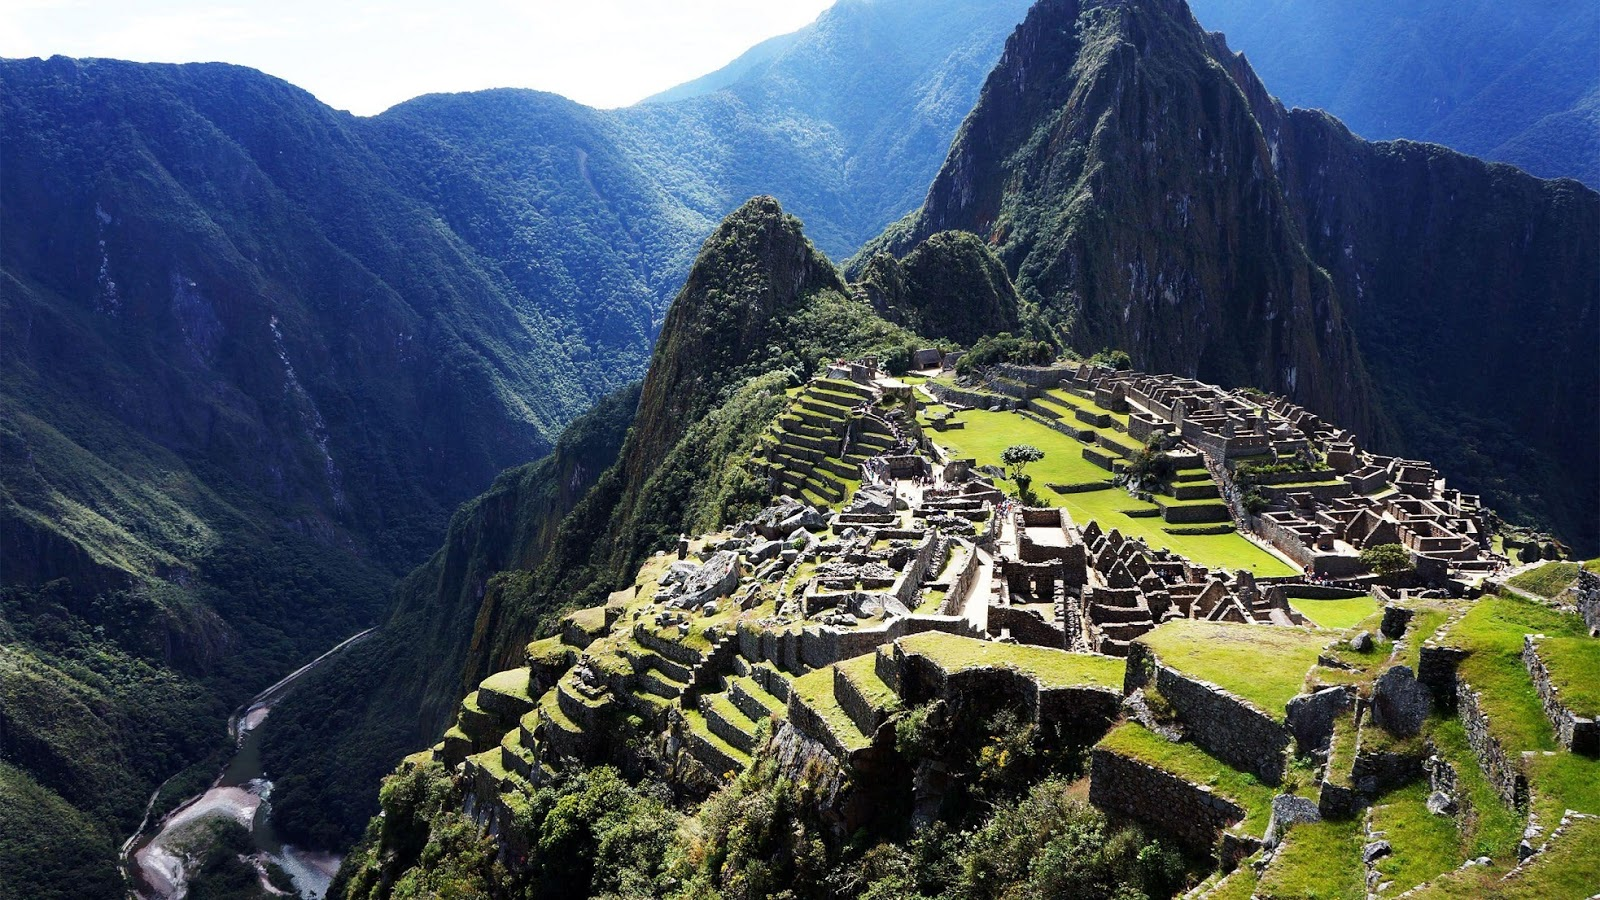 Travel places I want to see before I die Inspiration Machu Picchu Inkas Peru